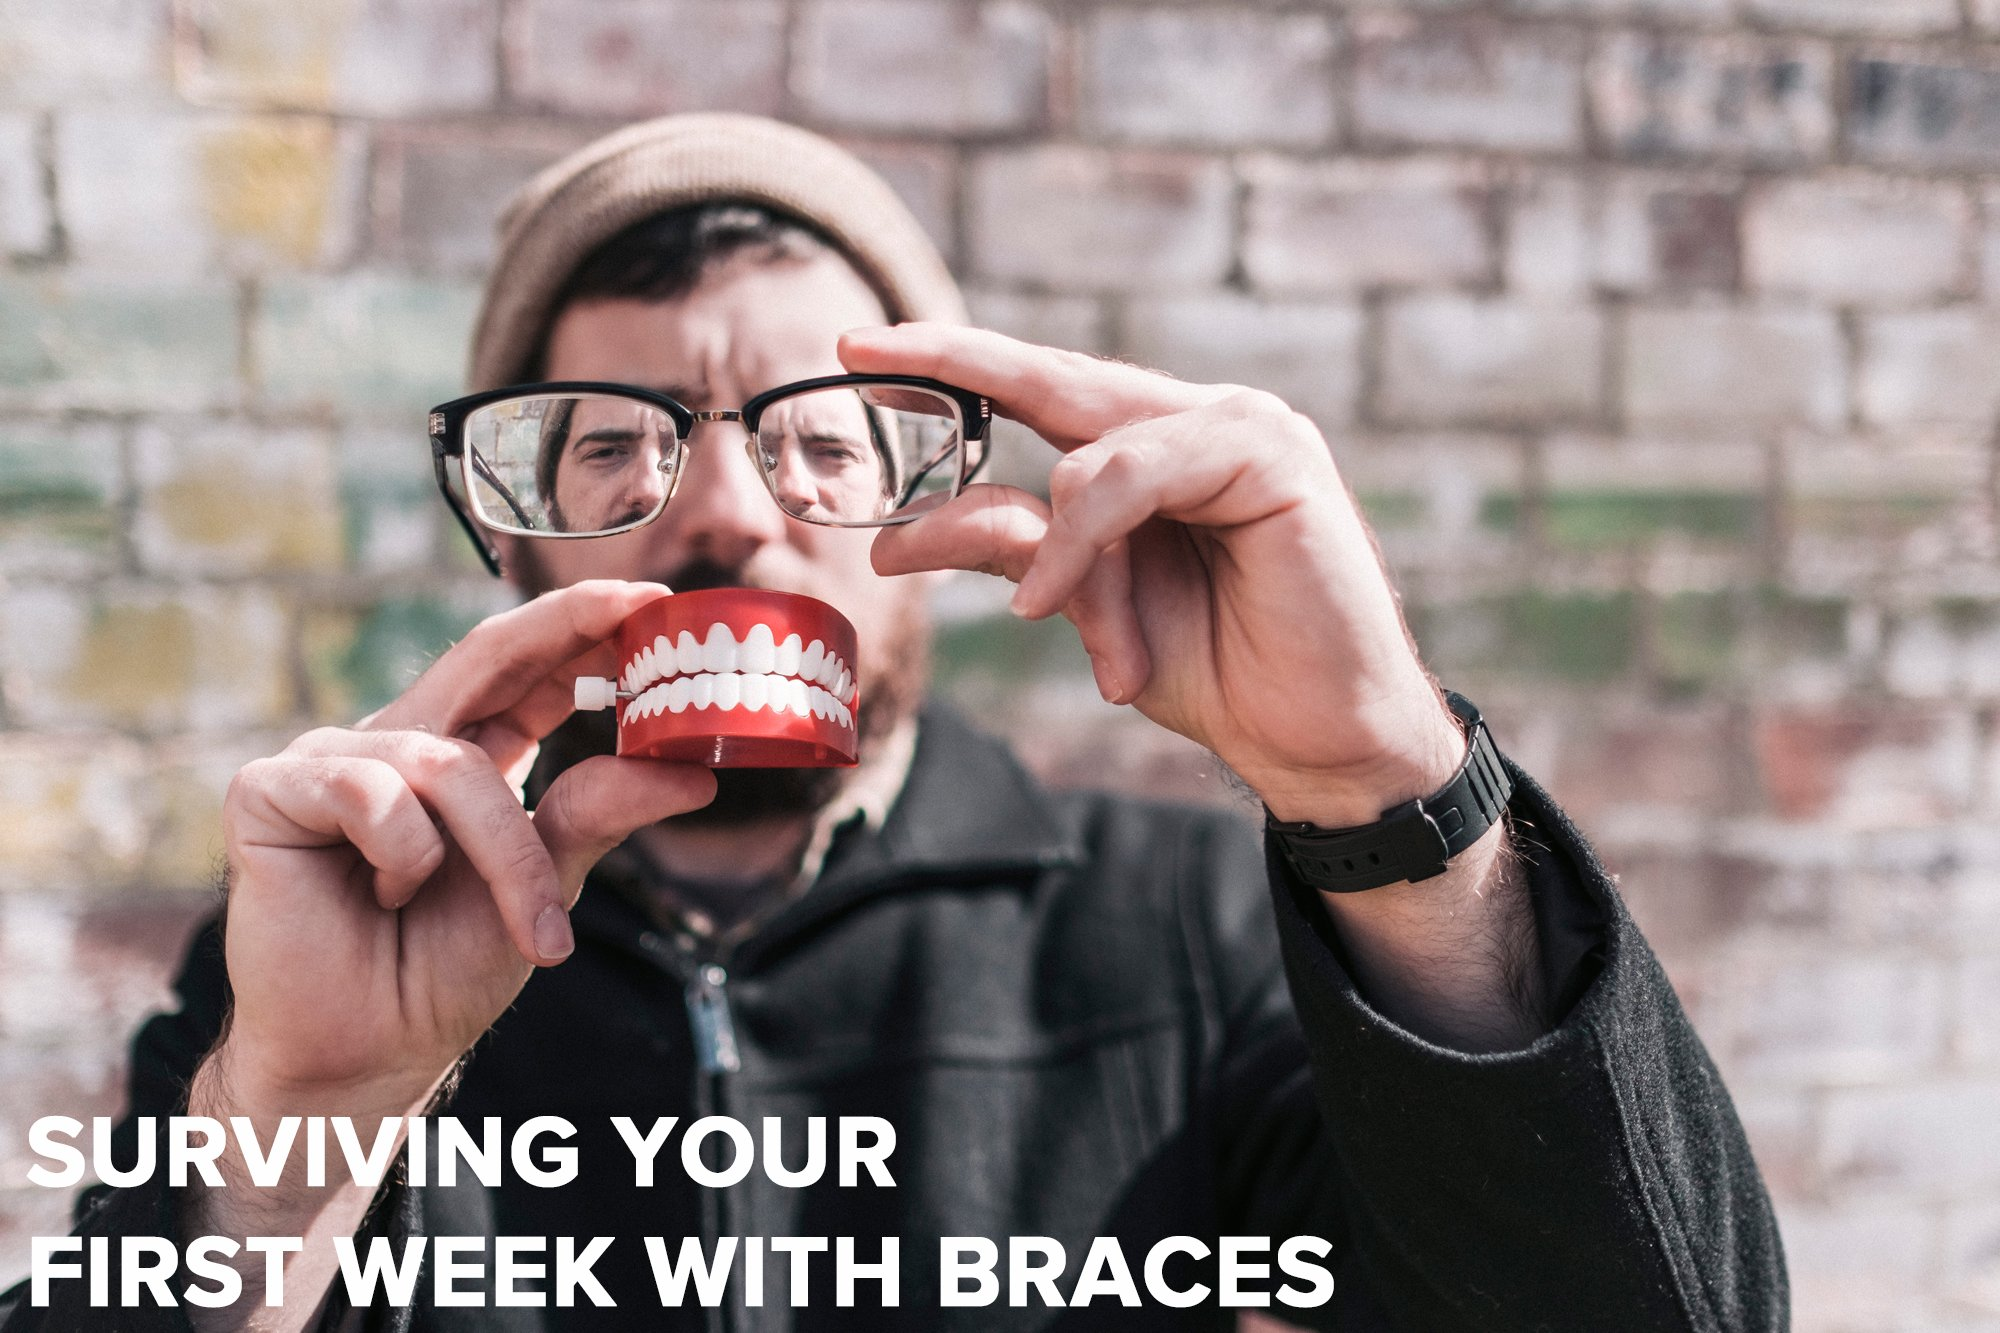 5 TIPS FOR SURVIVING YOUR FIRST WEEK WITH BRACES